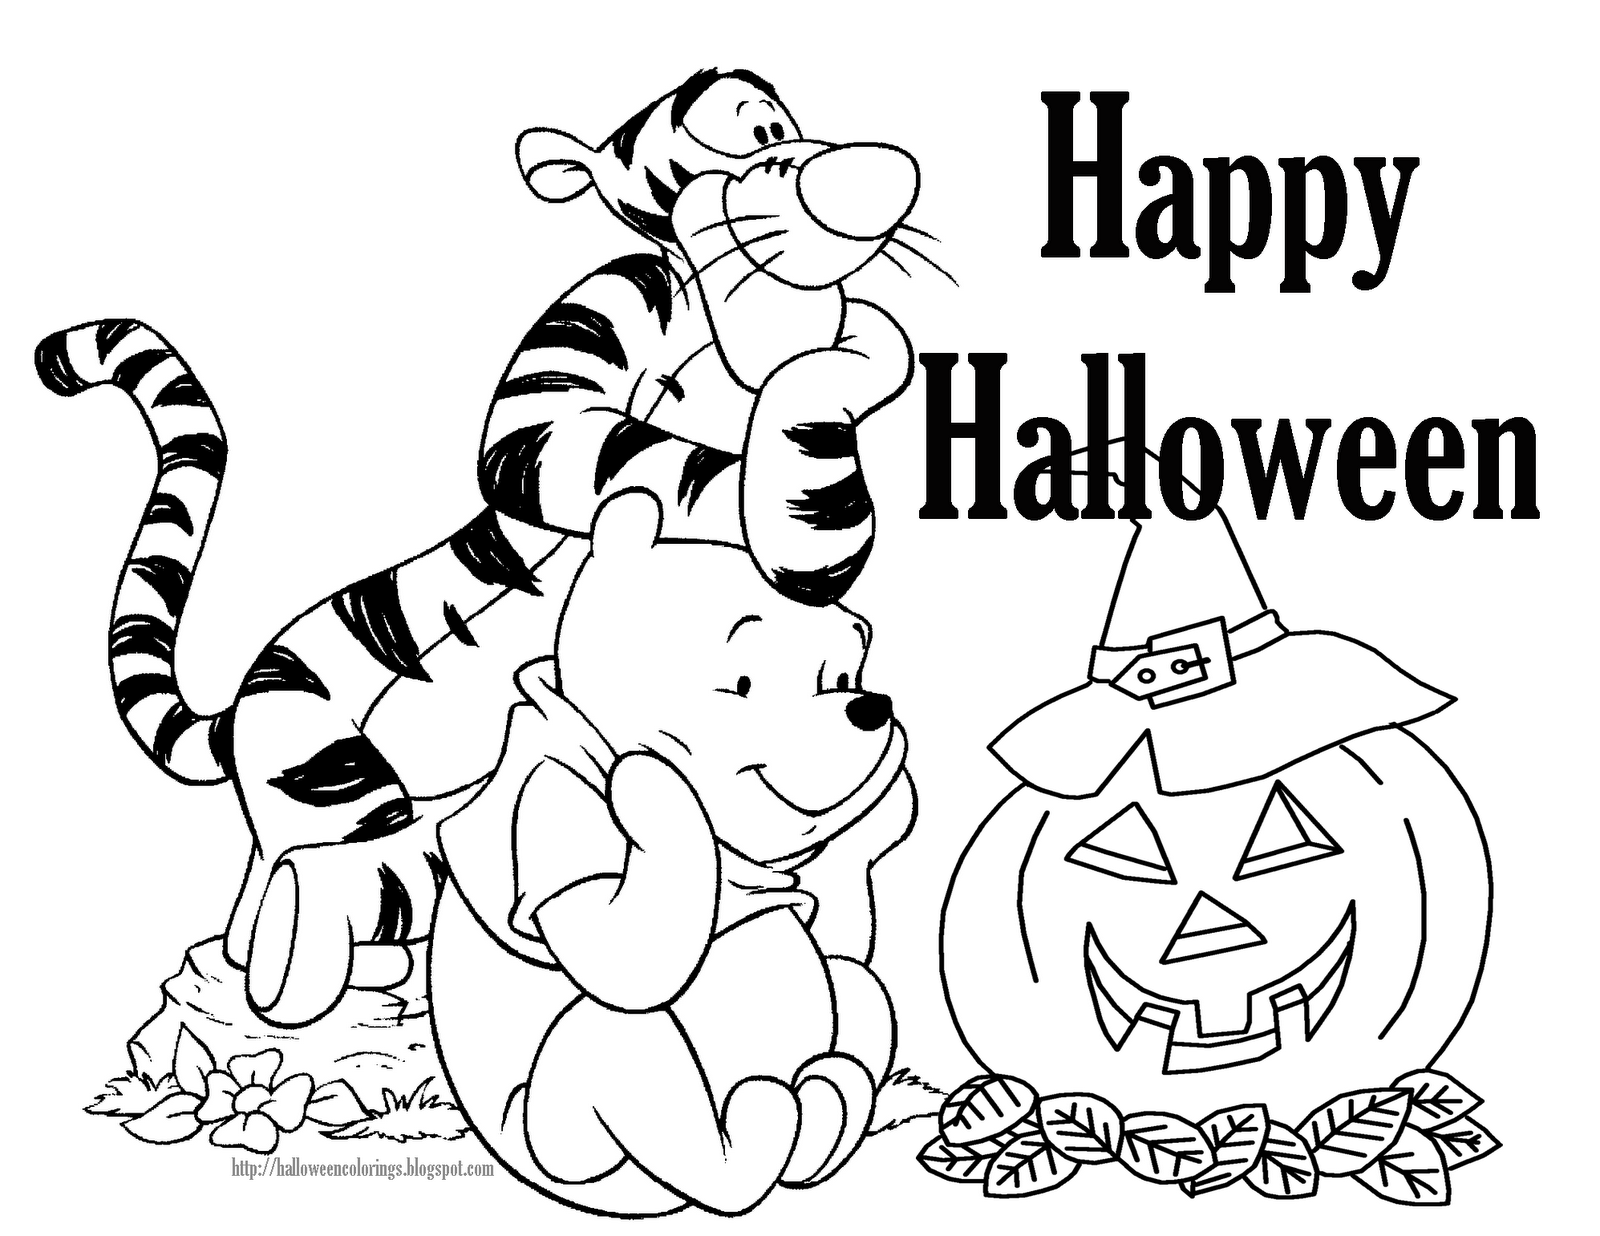 coloring pages halloween halloween coloring pages coloring halloween pages